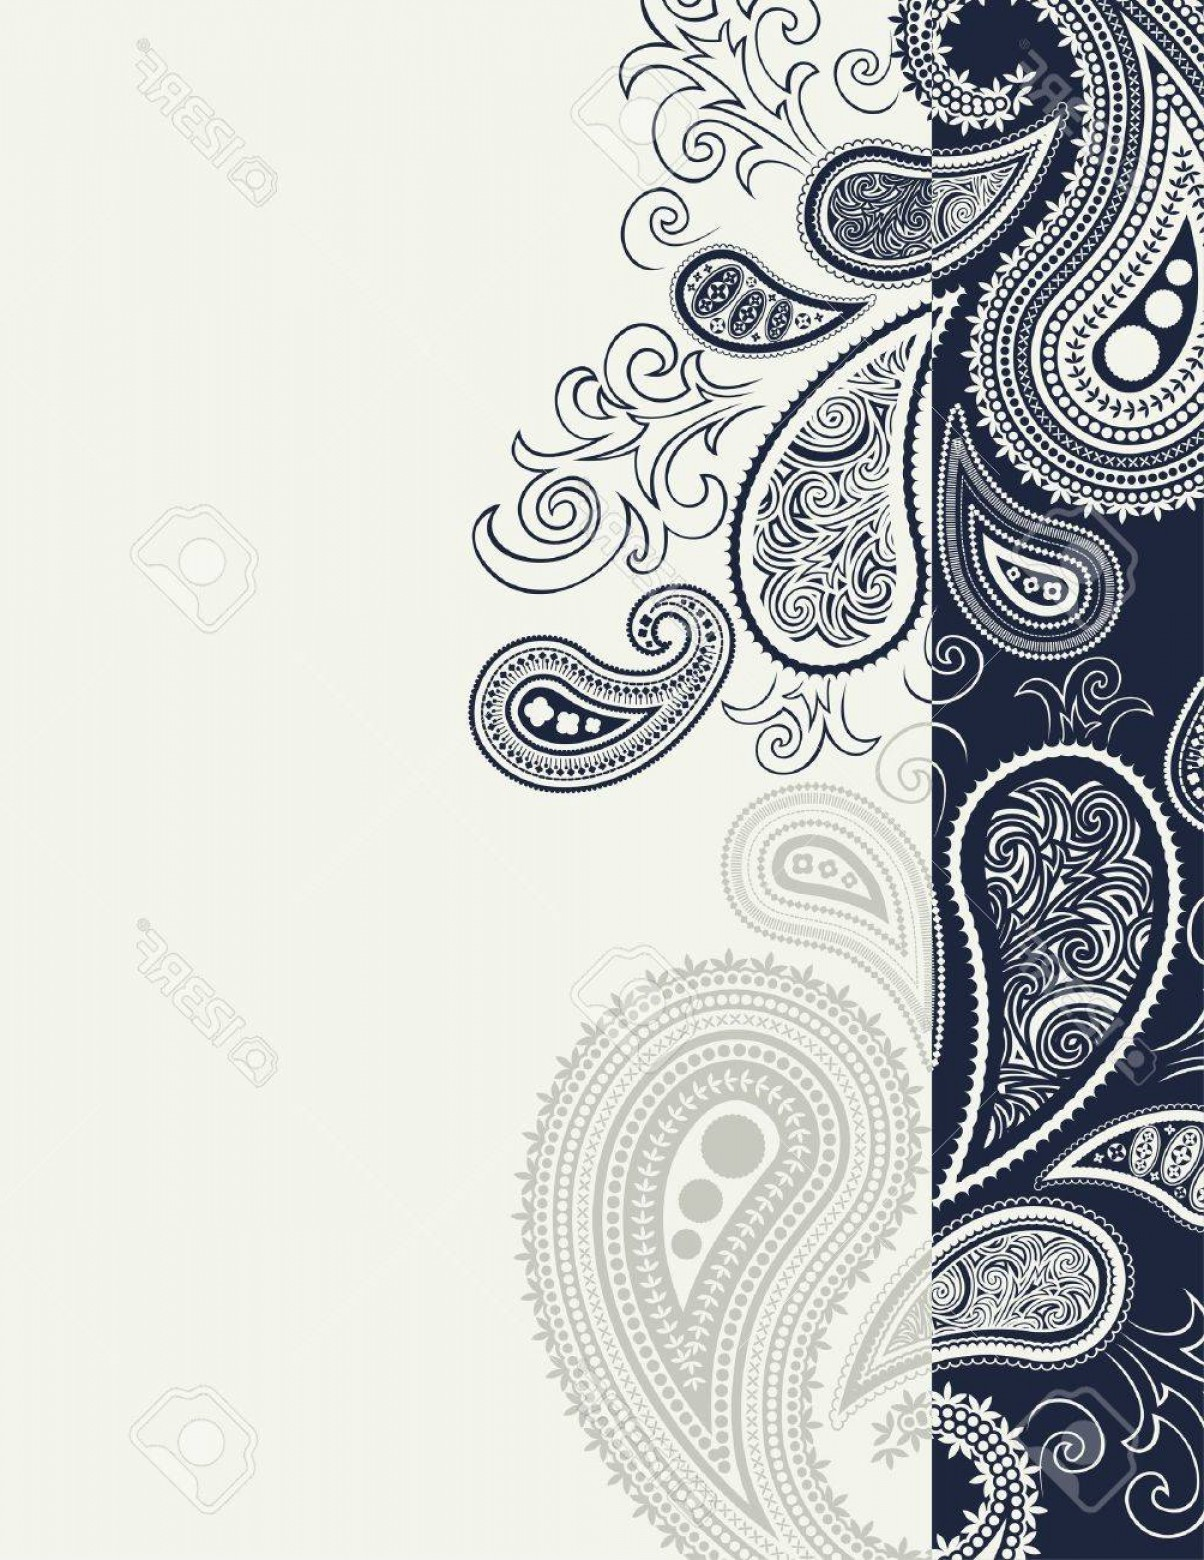 Simple Paisley Vector Border: Photopaisley Border Backgroundin Vector Format Individual Objects Very Easy To Edit